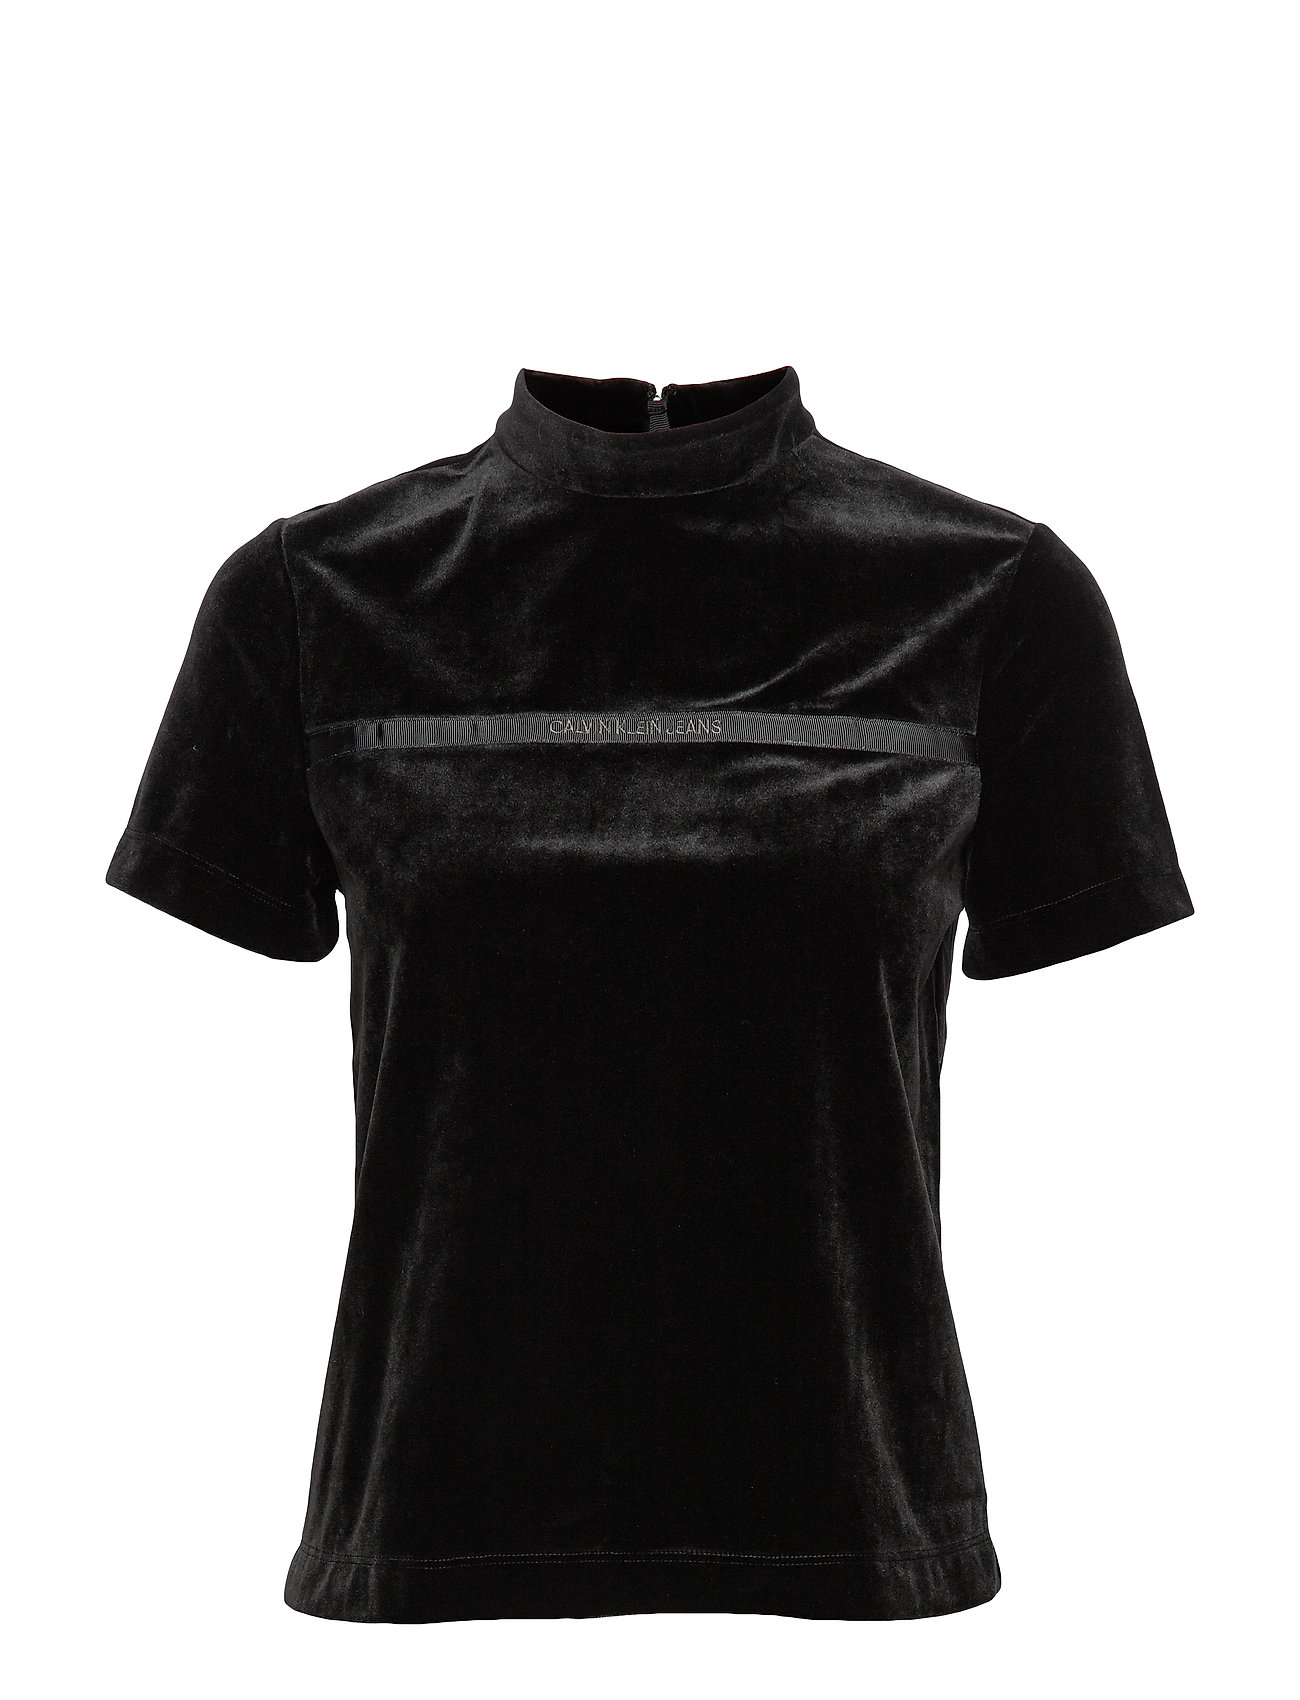 Calvin Klein Jeans VELVET MOCK NECK TOP - CK BLACK